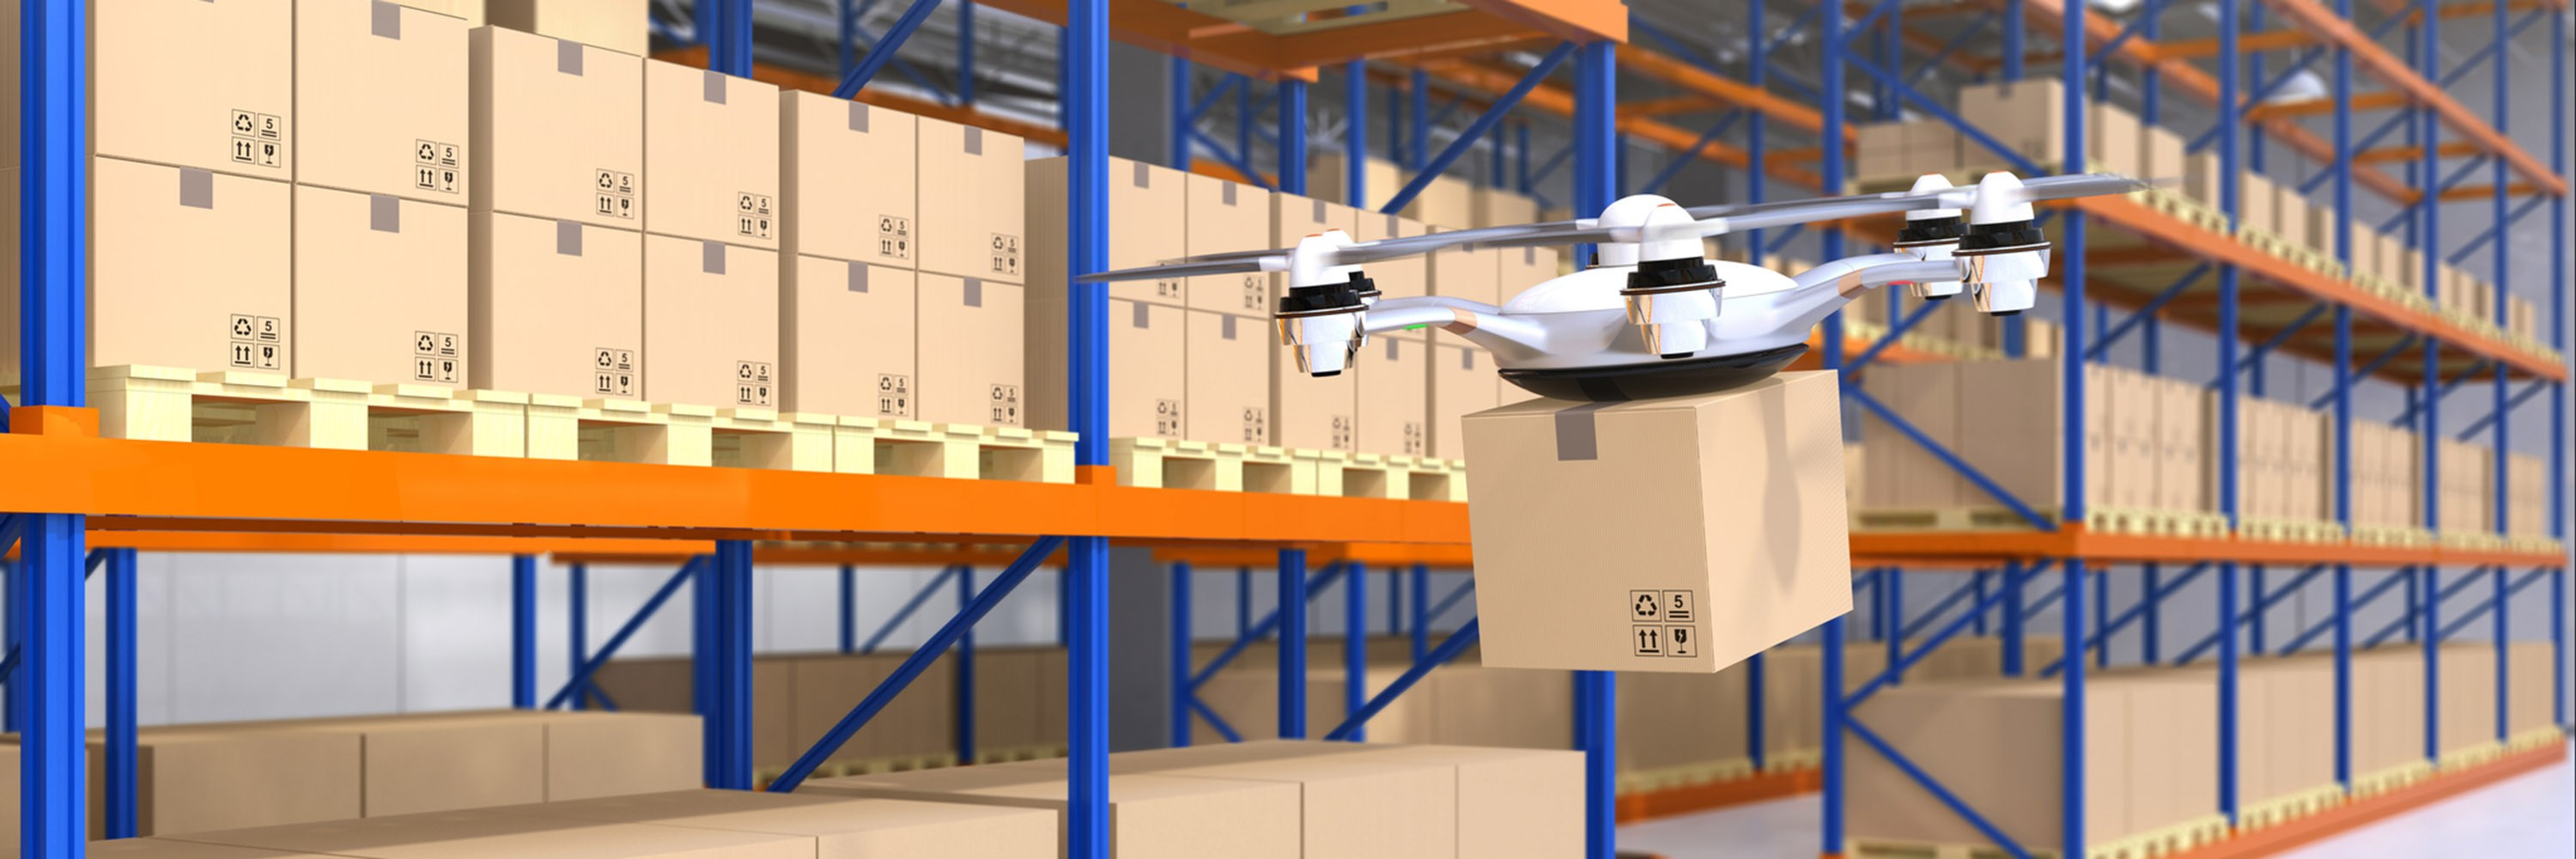 Warehouse drone and robots. Illustration: Haiyin/Dreamstime